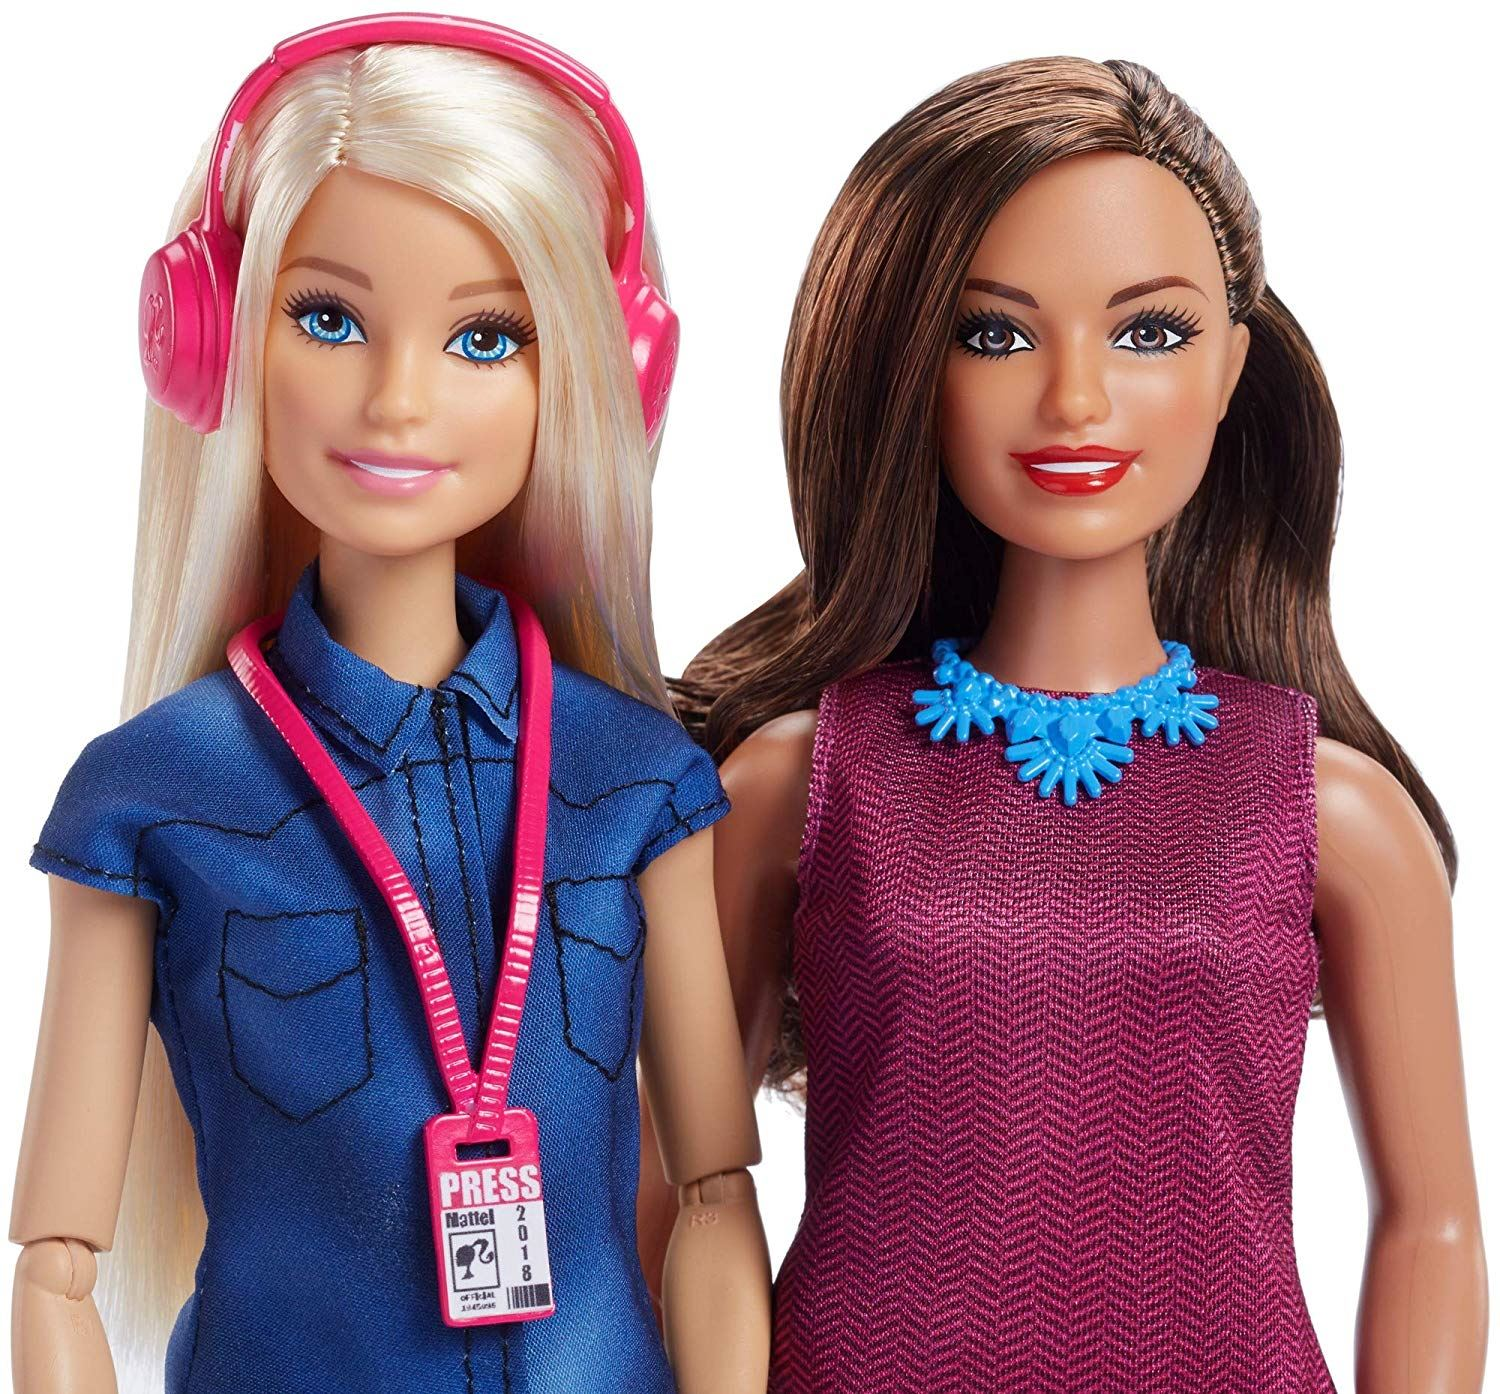 Details about Mattel Barbie Toy FJB22 2 Pack TV News Team Anchor Presenter  Doll & Accessories